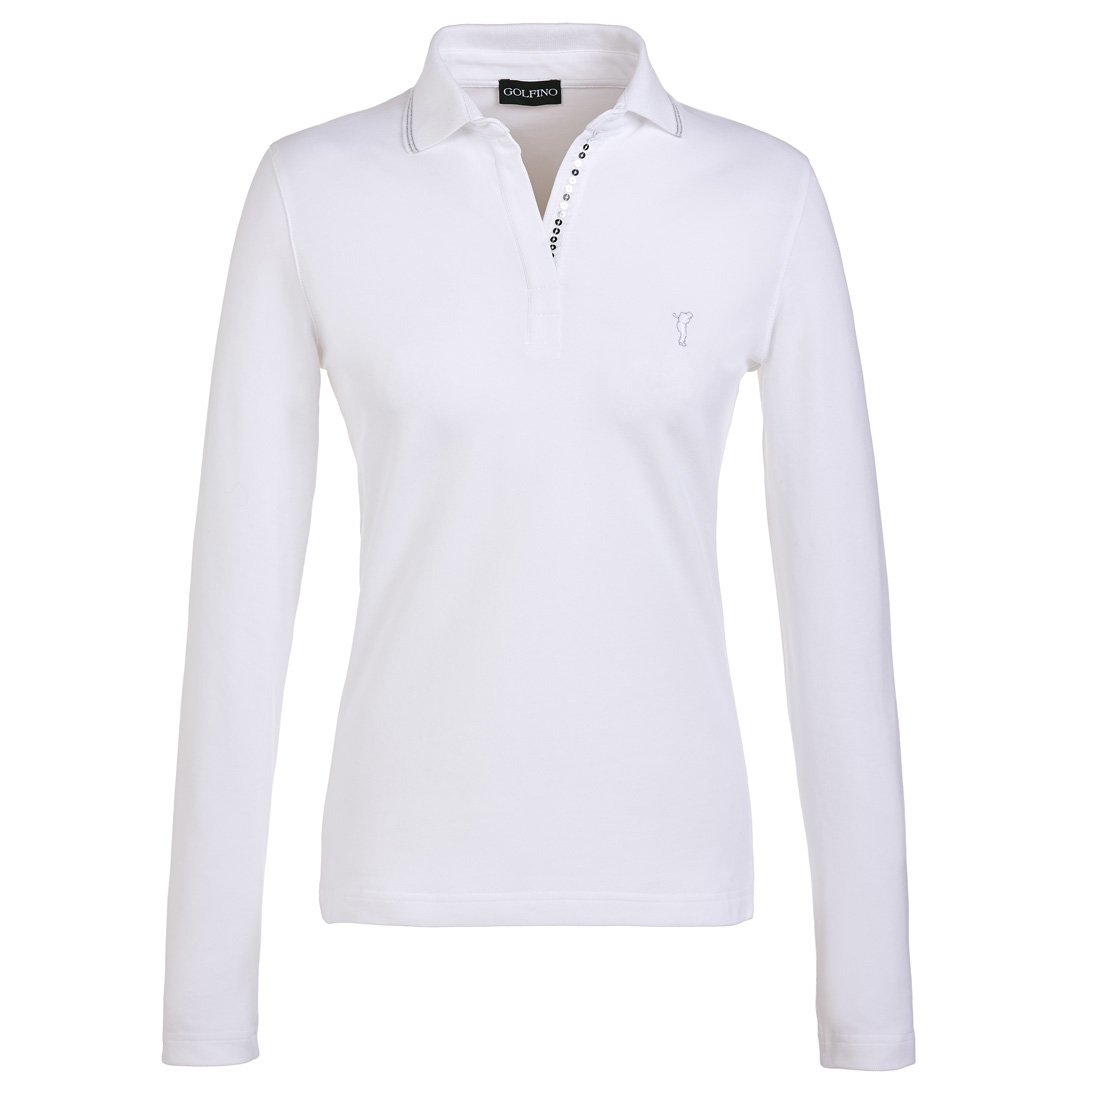 Ladies' long sleeve sun protection golf polo with sequins